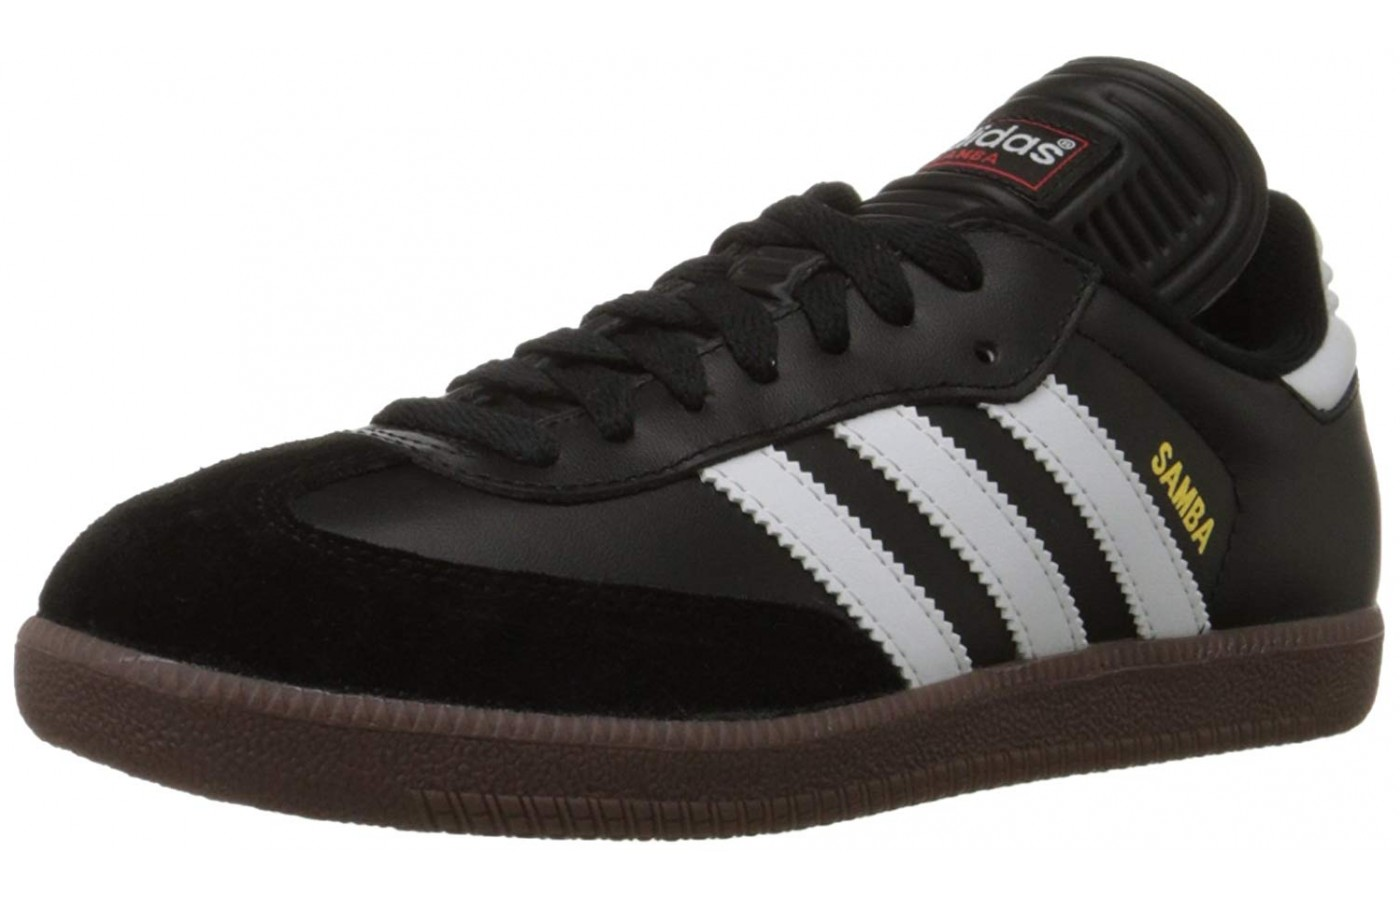 d516921834e Adidas Samba Reviewed